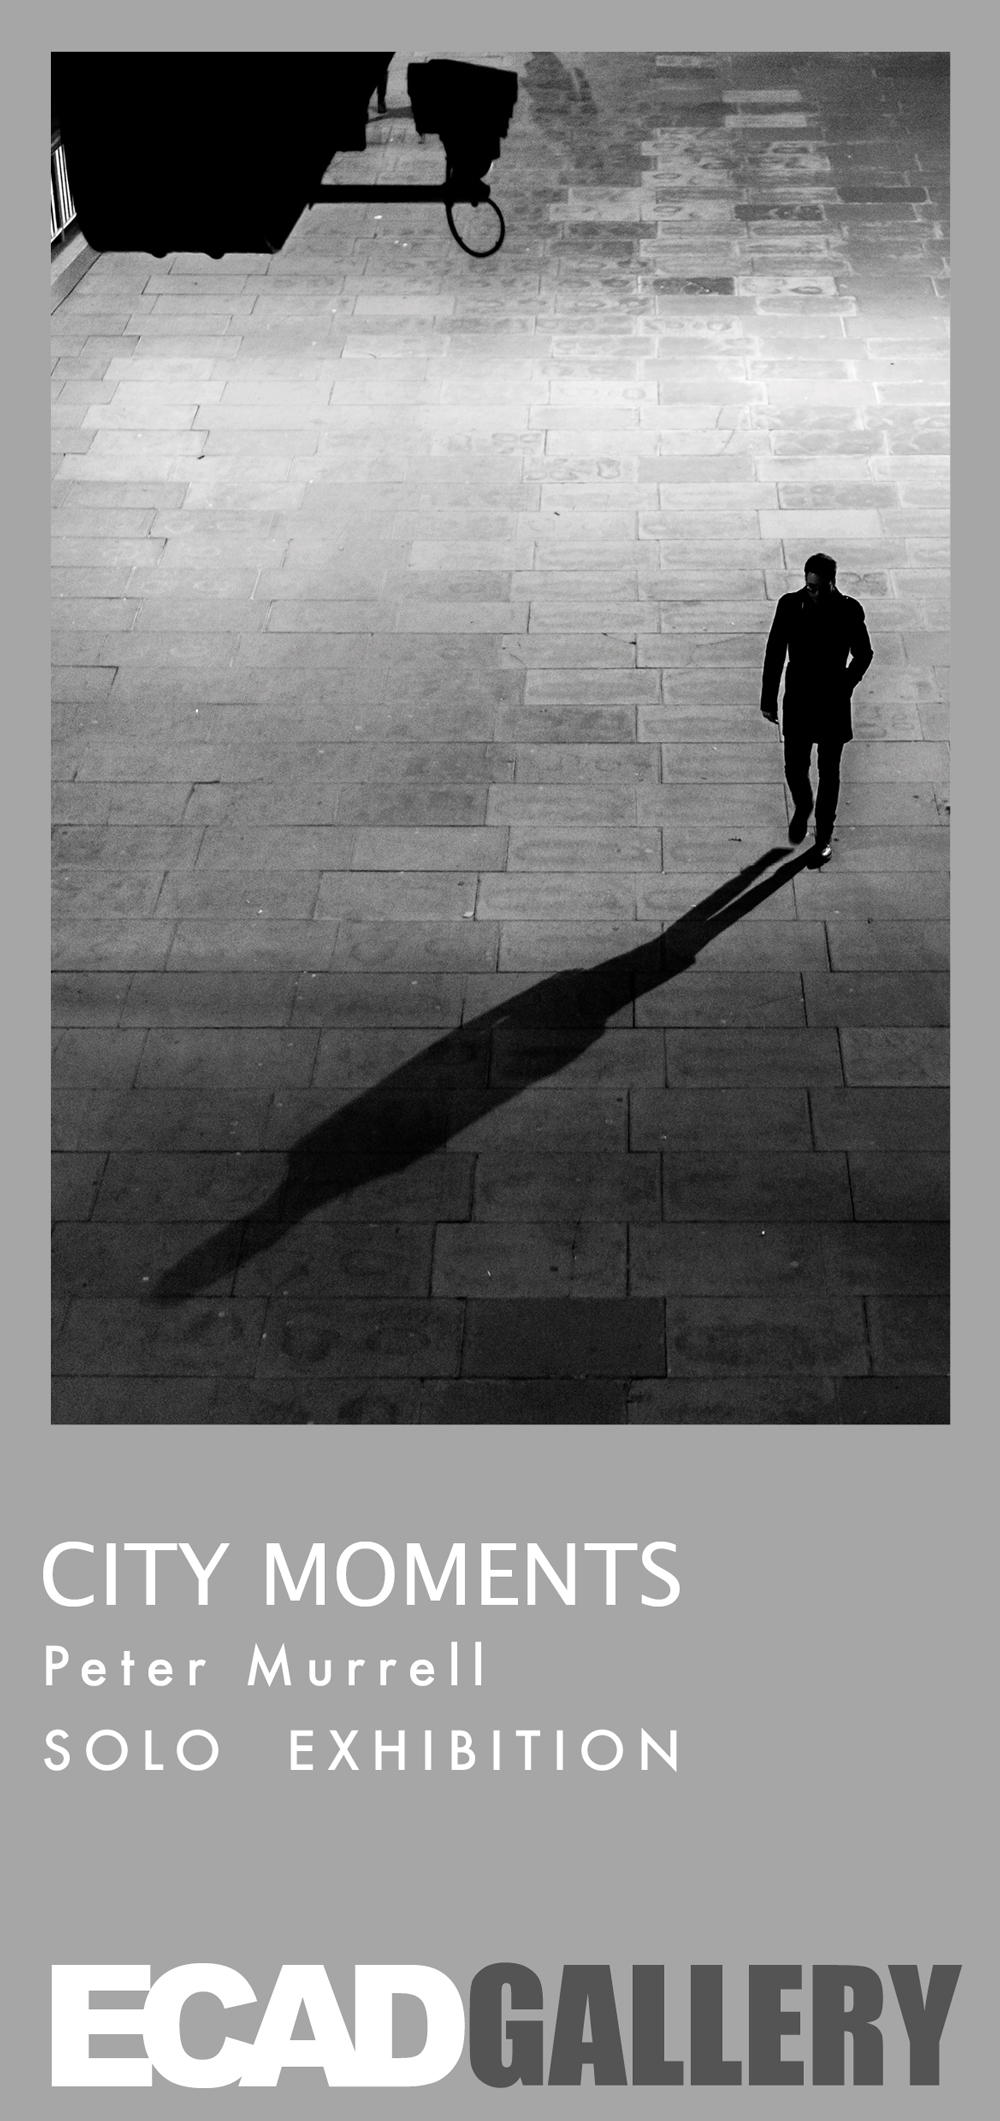 Peter Murrell | Jan 25 - Feb 25 - Award Winning London Photographer - Peter Murrell is an acclaimed street, people and architectural photographer based in London. He took up photography six years ago, where rumour has it he is never without his camera thus resulting in a style that can only be described as candid, random, and visually engaging offering an alternative but authentic view of city life.'Coming from a civil engineering/building management background capturing architectural images appealed to him but as time went by he felt his work lacked the 'human element' these structures were designed to serve. Hence you will find his work may contain a solitary figure drifting in or out of the image bringing perspective and atmosphere.Peter is forever broadening his horizons and is keen to discover new ways of expressing himself from behind the lens.'